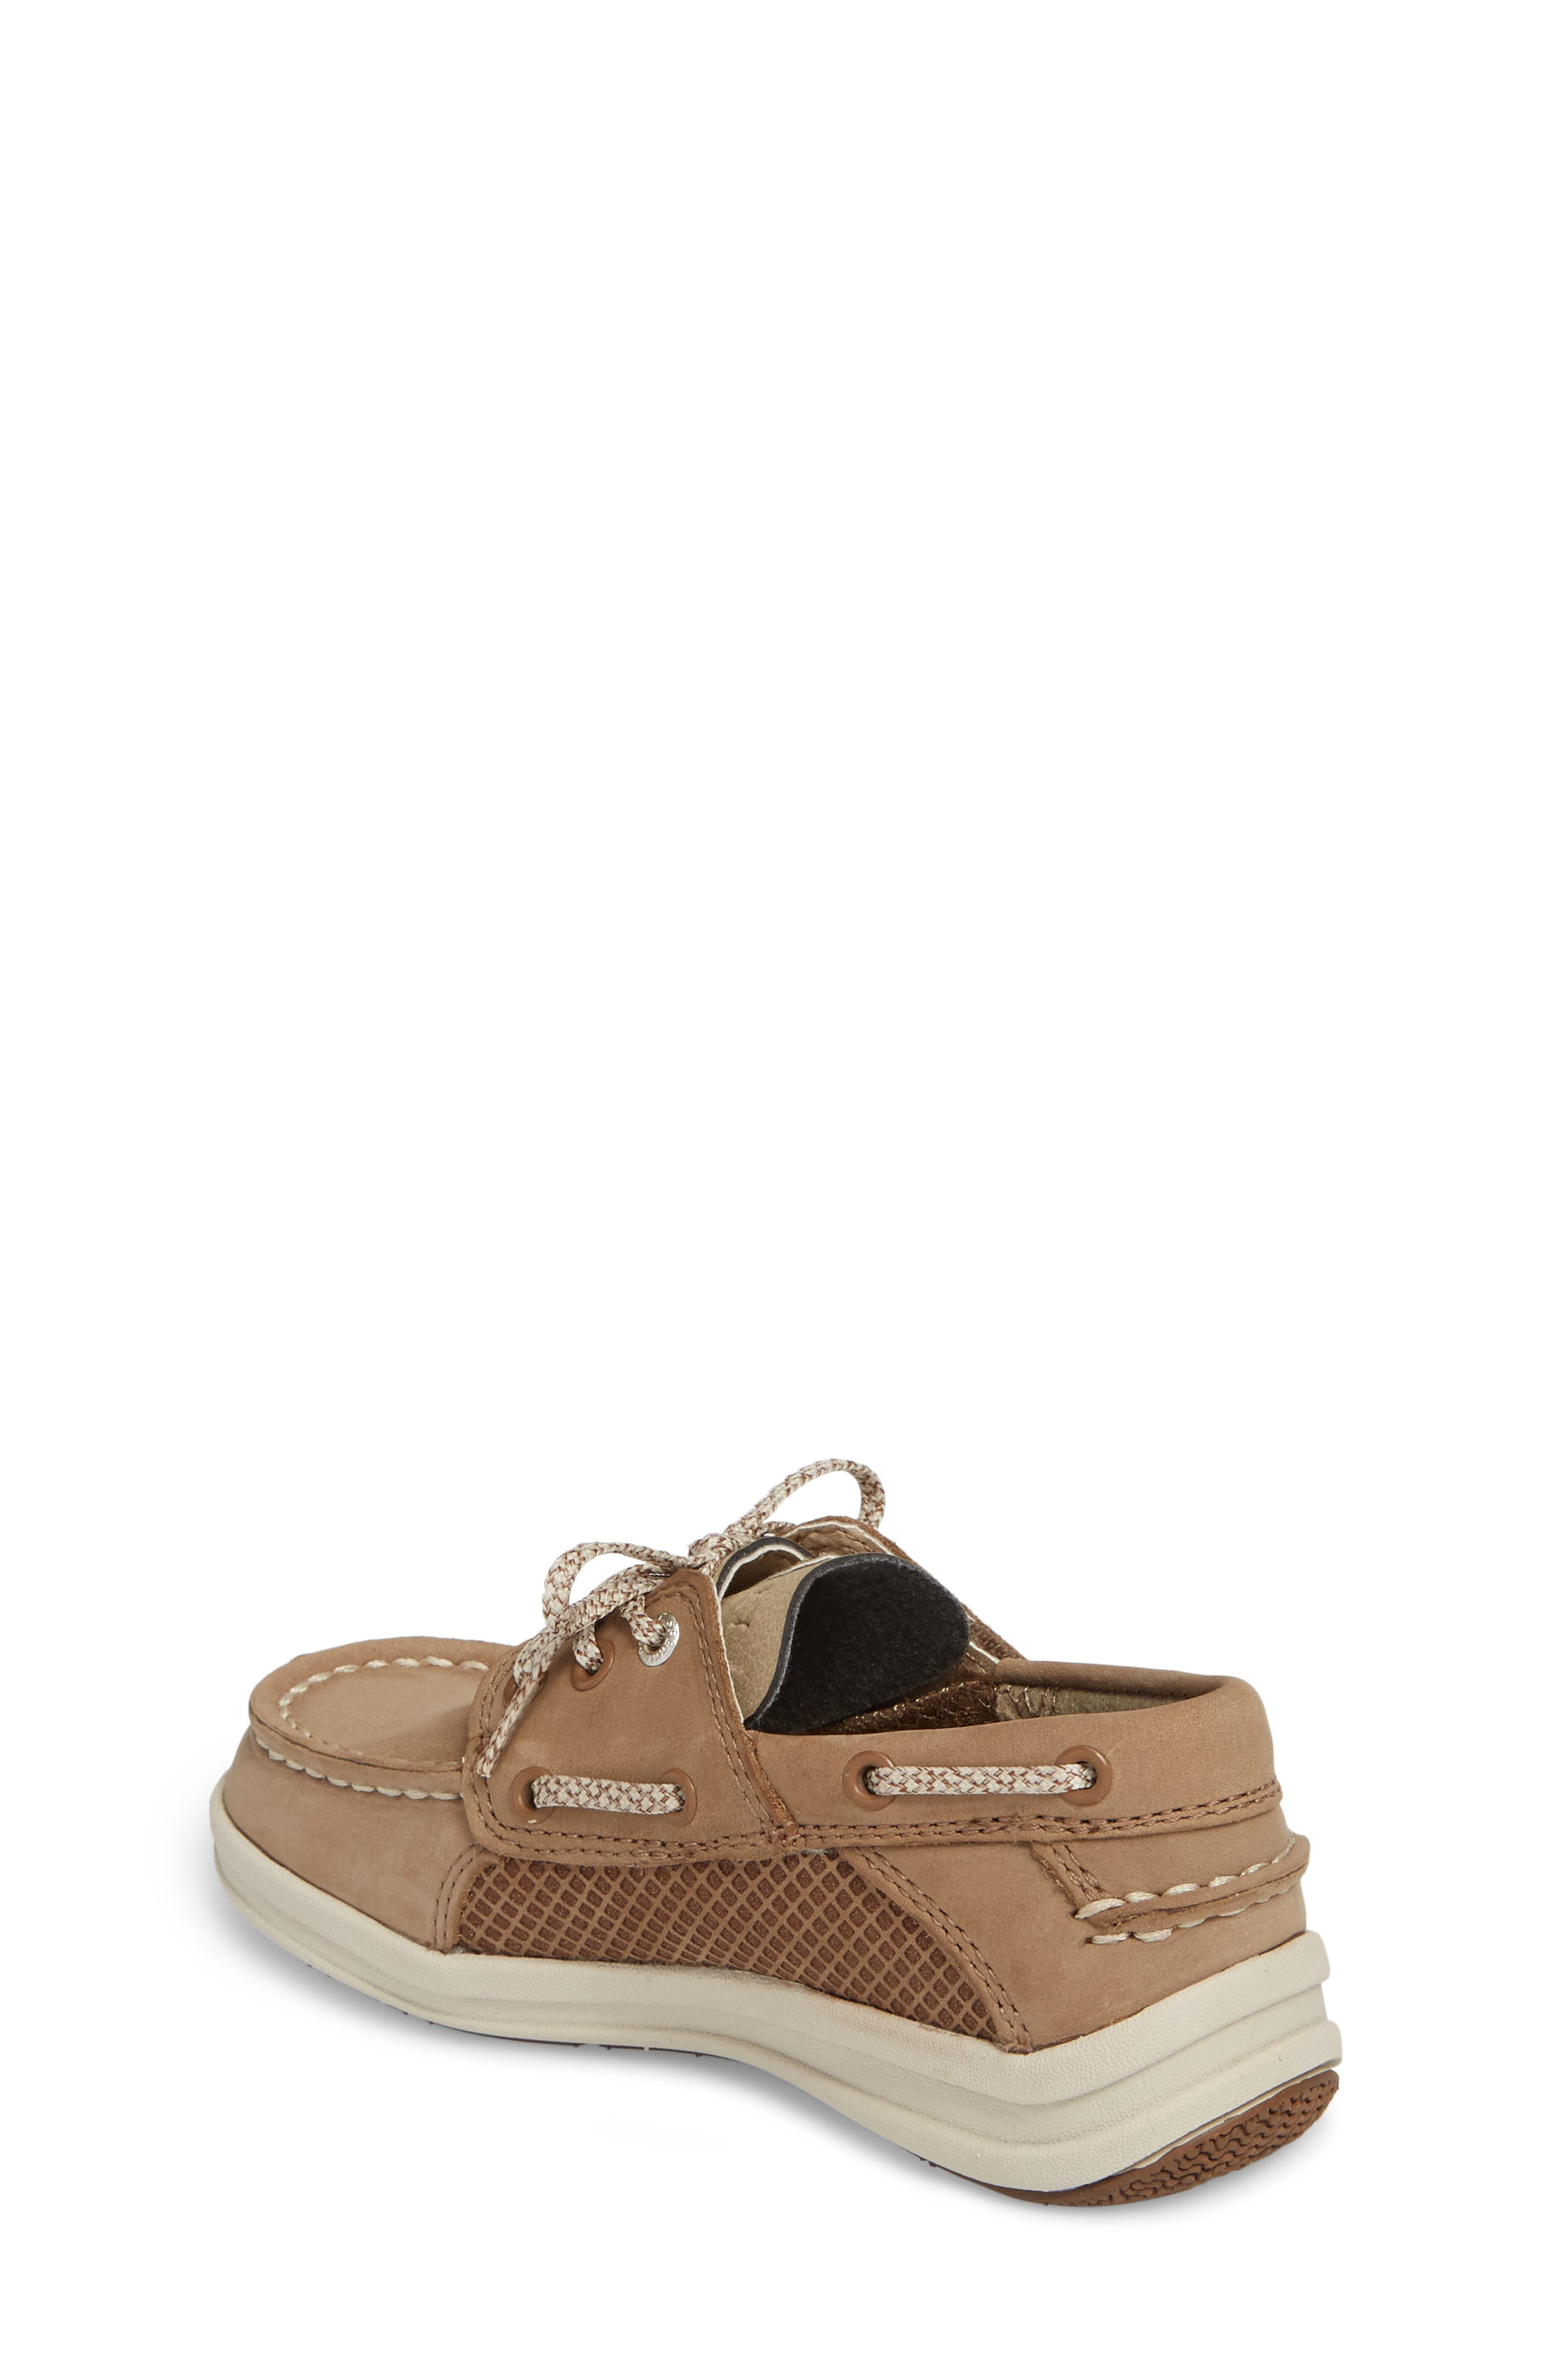 Alternate Image 2  - Sperry Kids Gamefish Boat Shoe (Walker & Toddler)